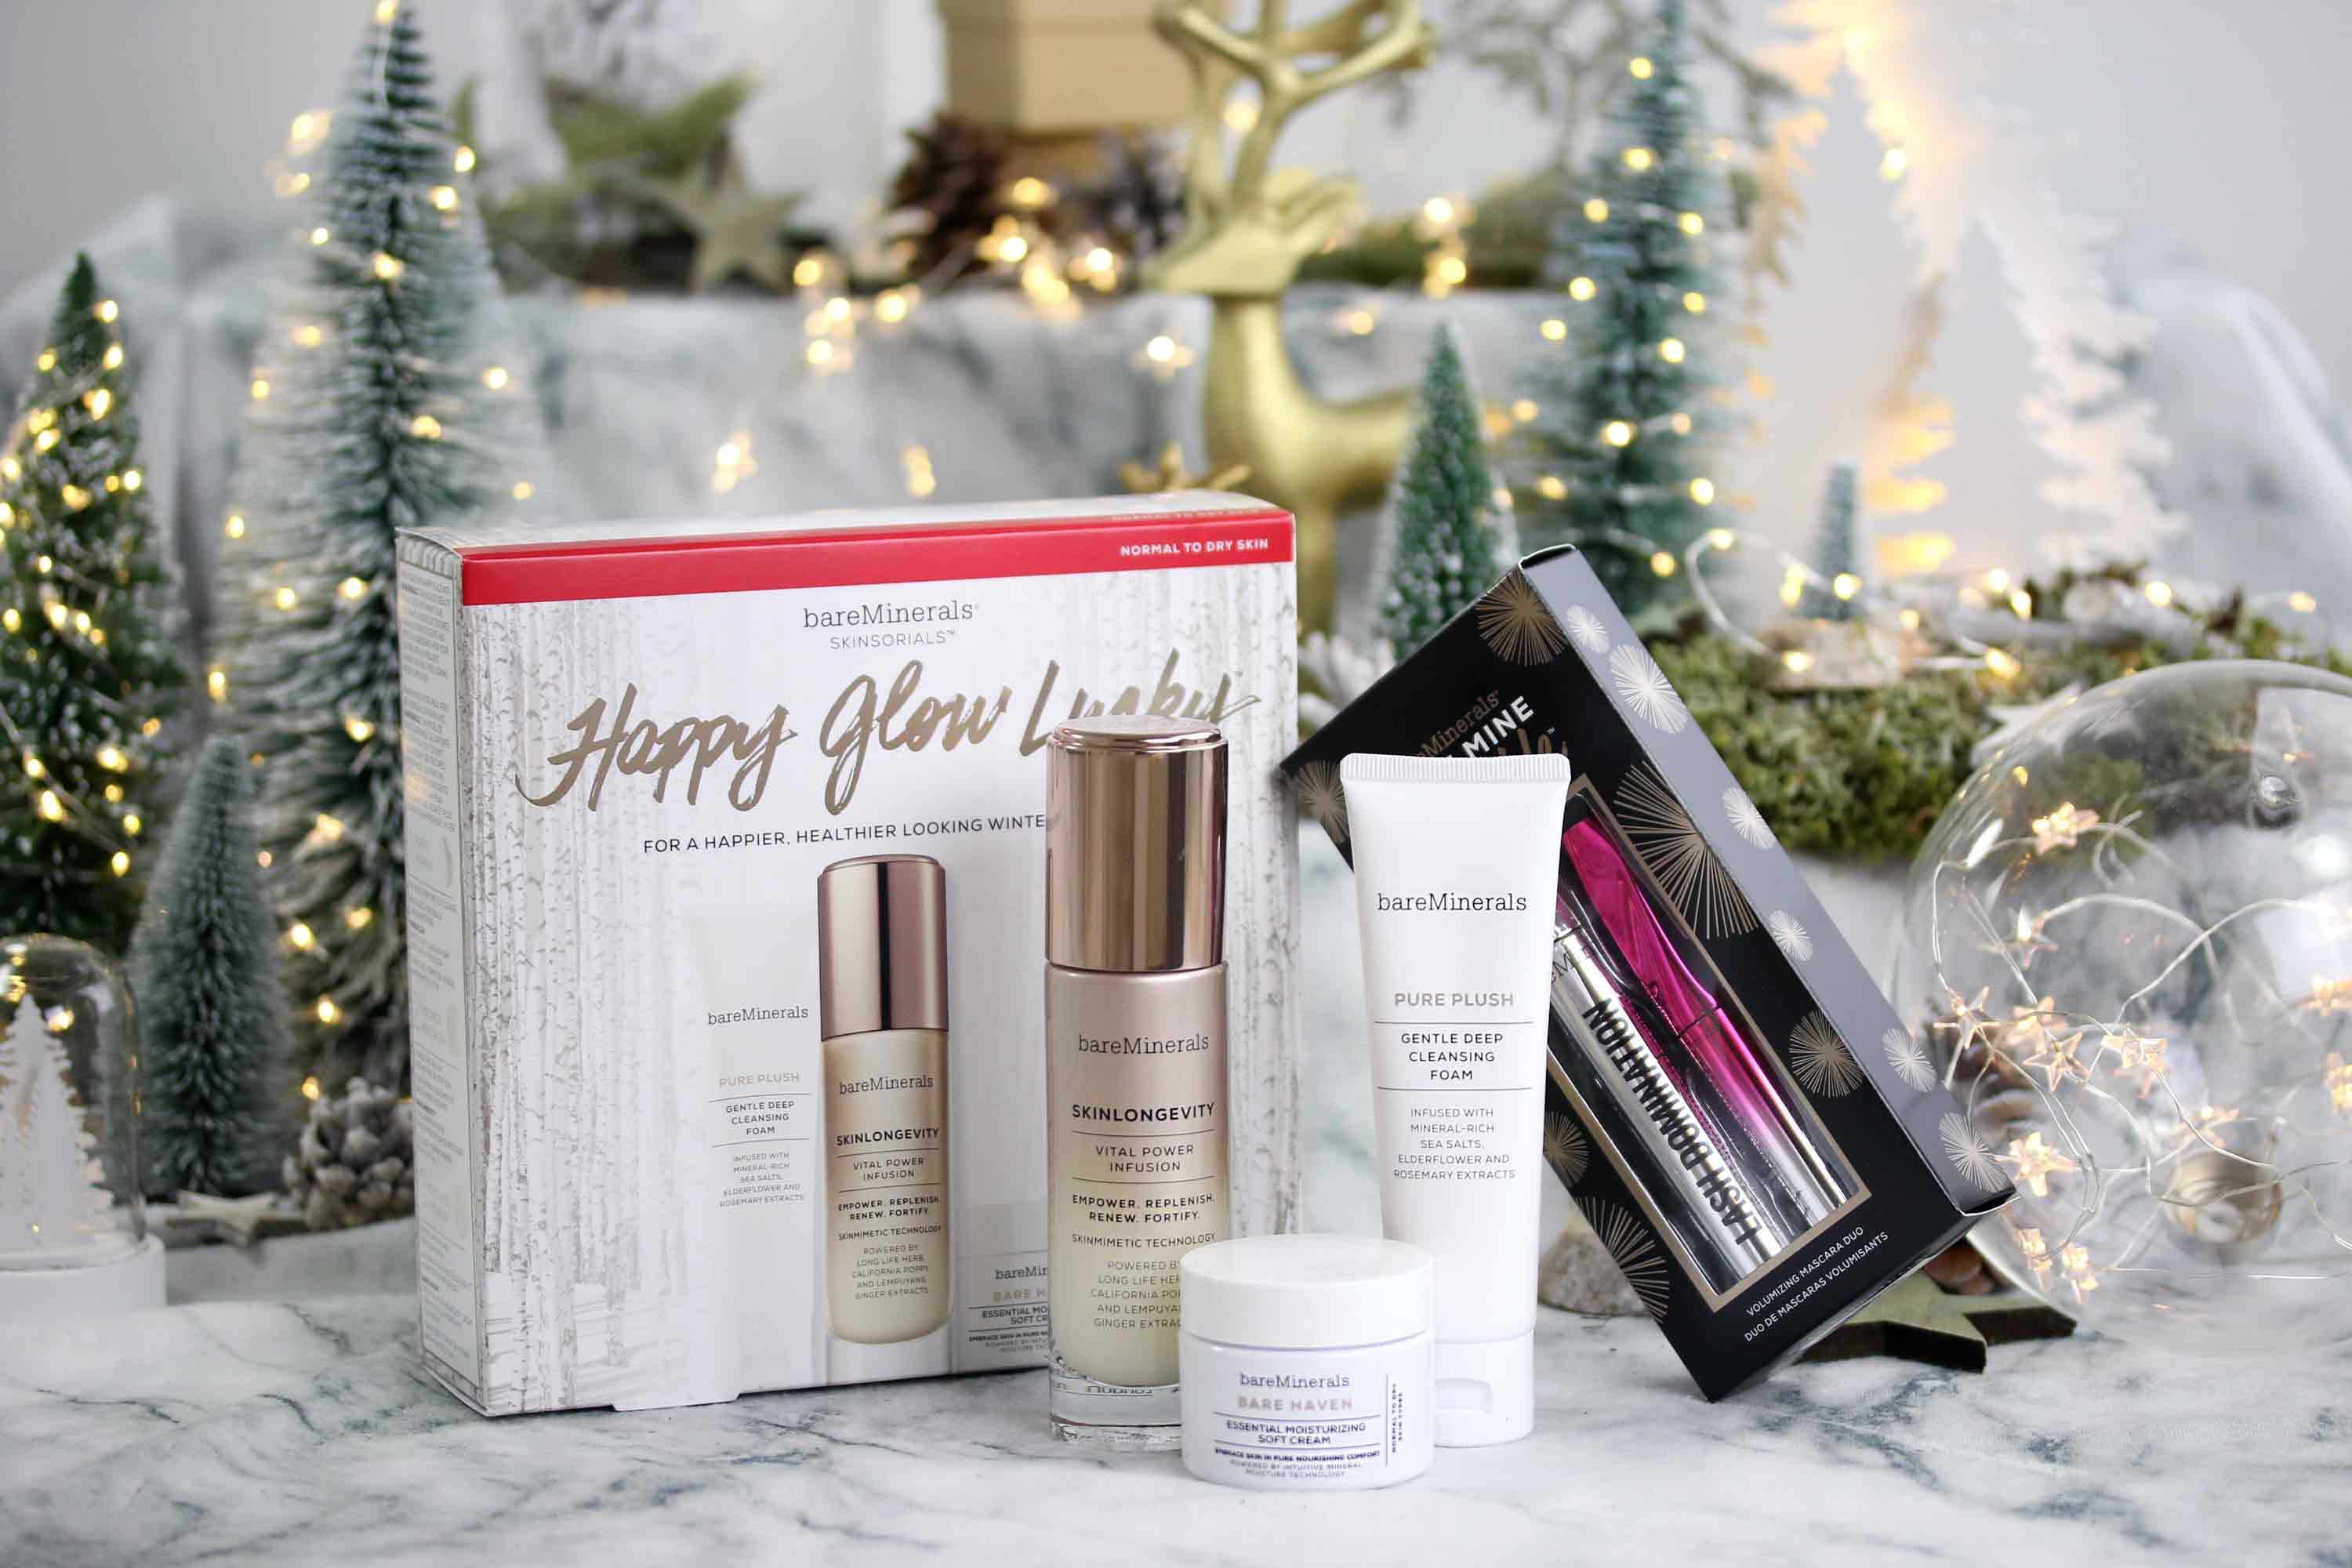 bareminerals-happy-glow-lucky